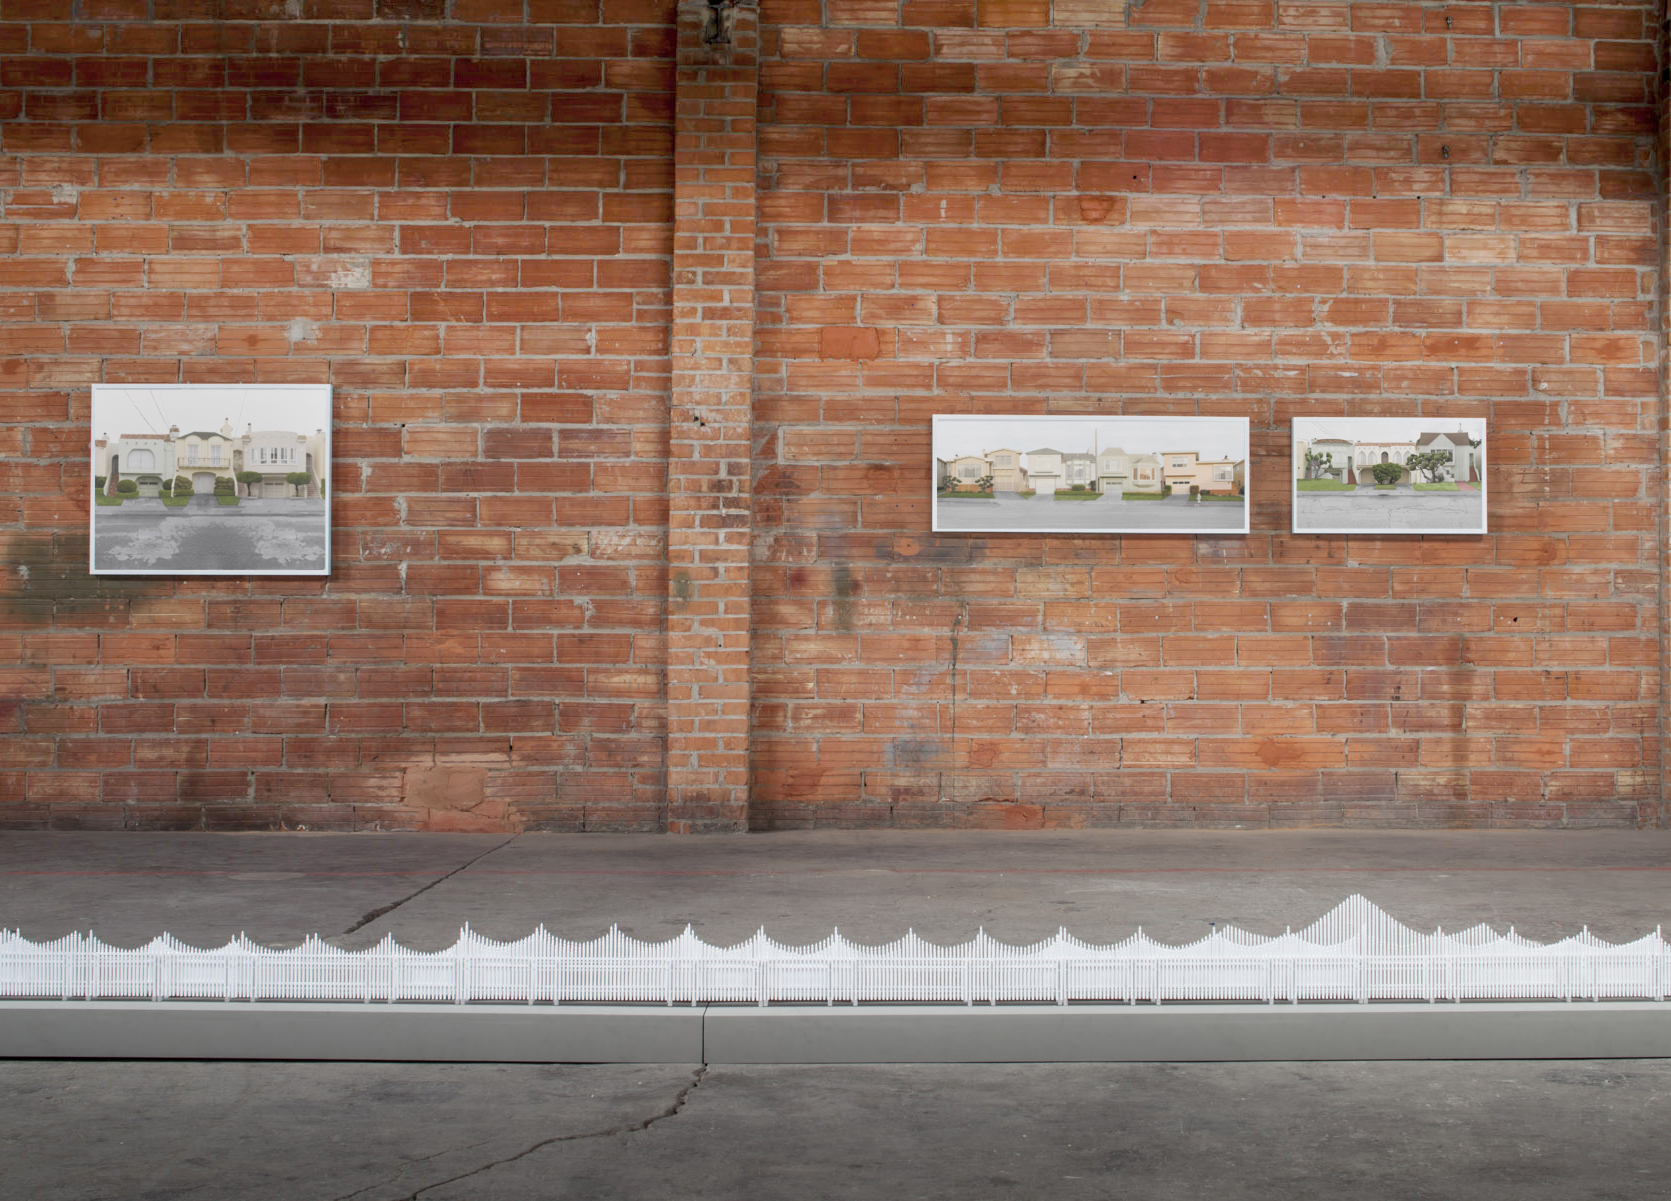 Installation view,  Fence  sculptural installation with  Streets  photographs,  Trace  exhibition at SCA Contemporary, Albuquerque, NM, 2014. Image courtesy of Andy Mattern.